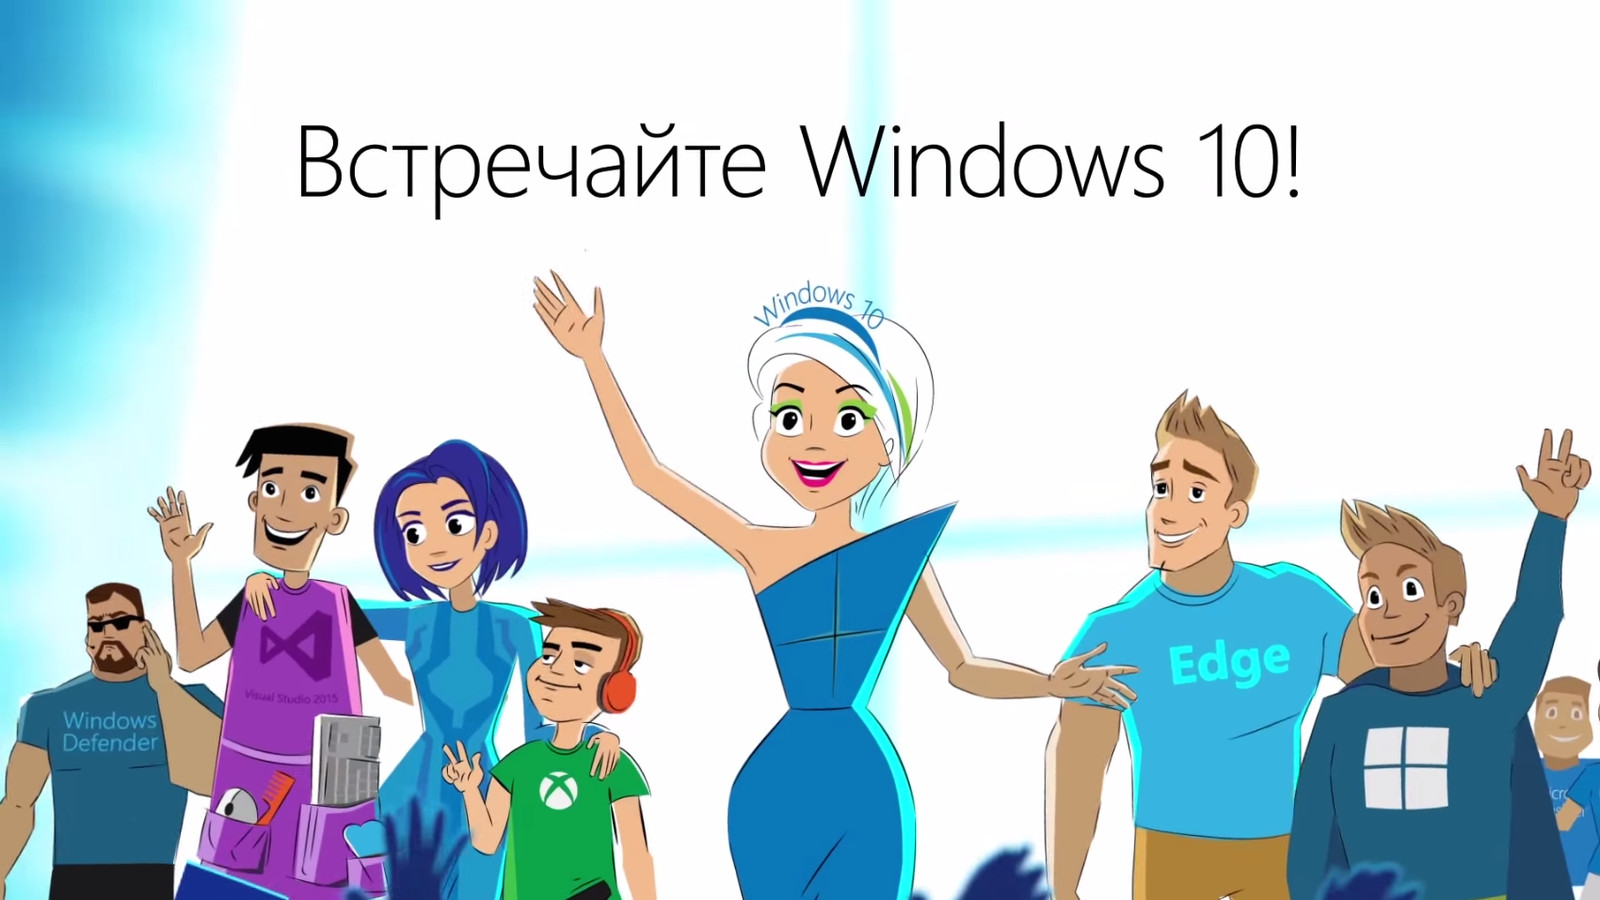 windows 10 commercials in russia are basically saturday